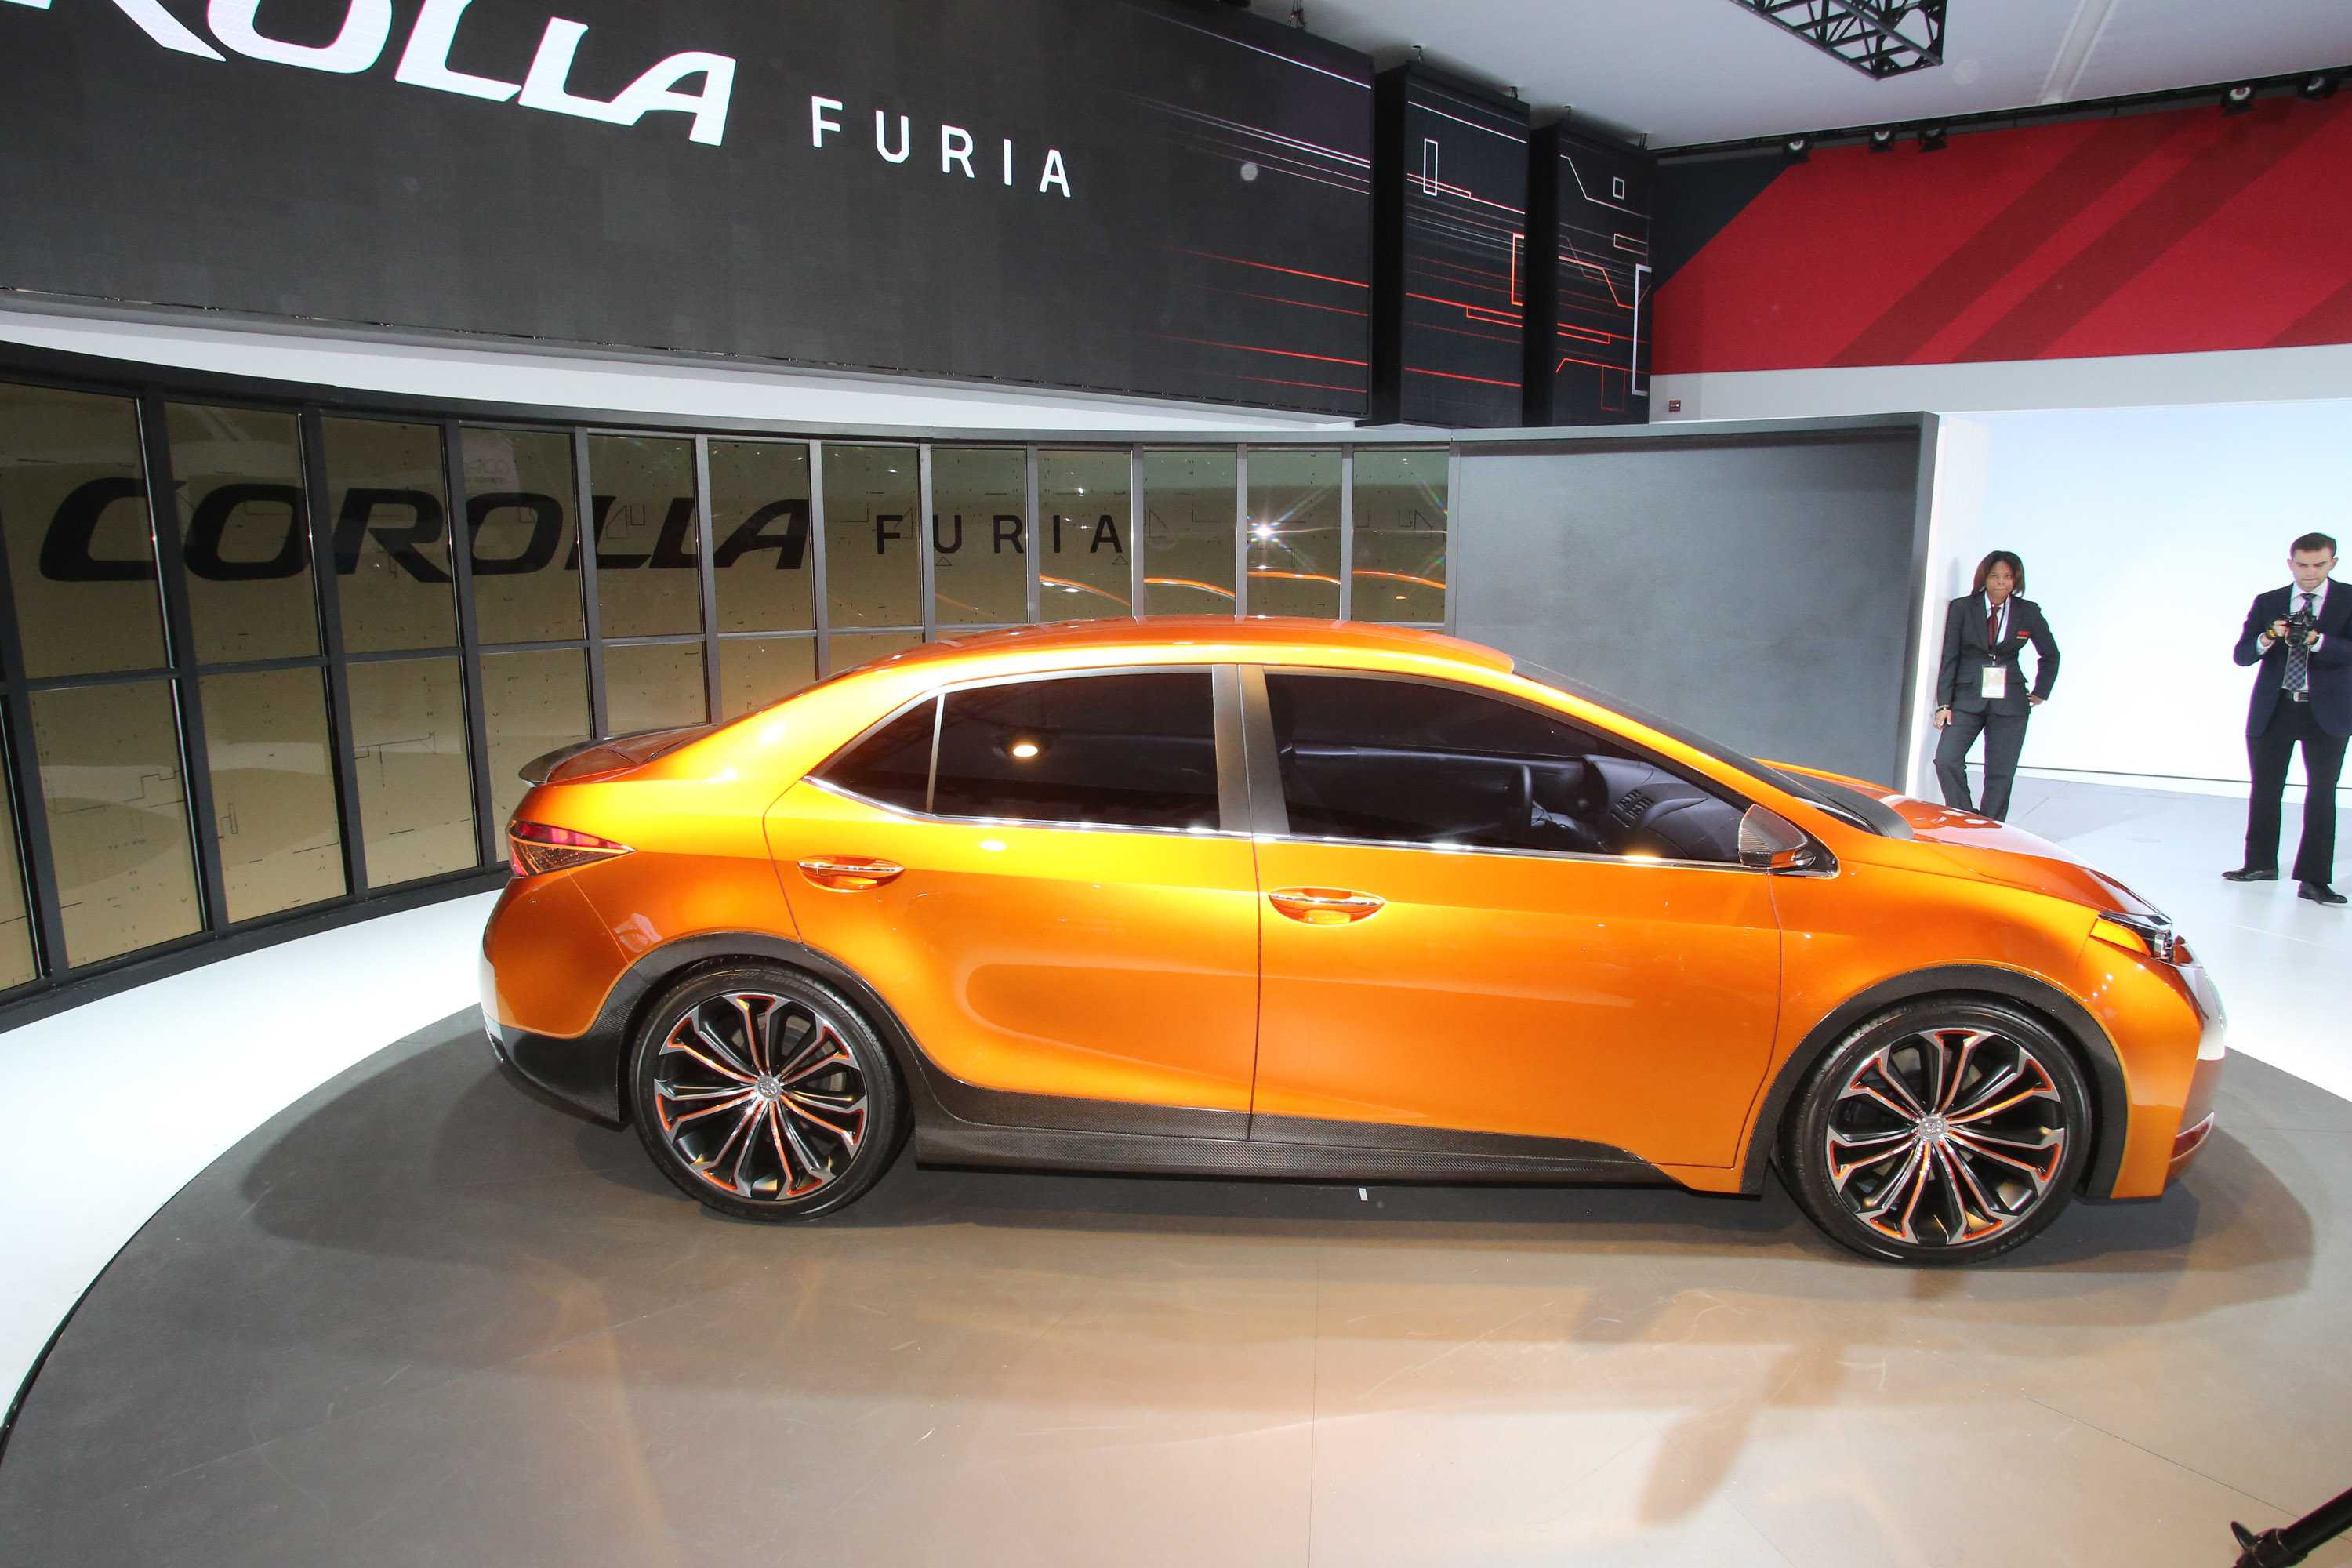 2013 Naias Toyota Corolla Furia Concept Makes Official